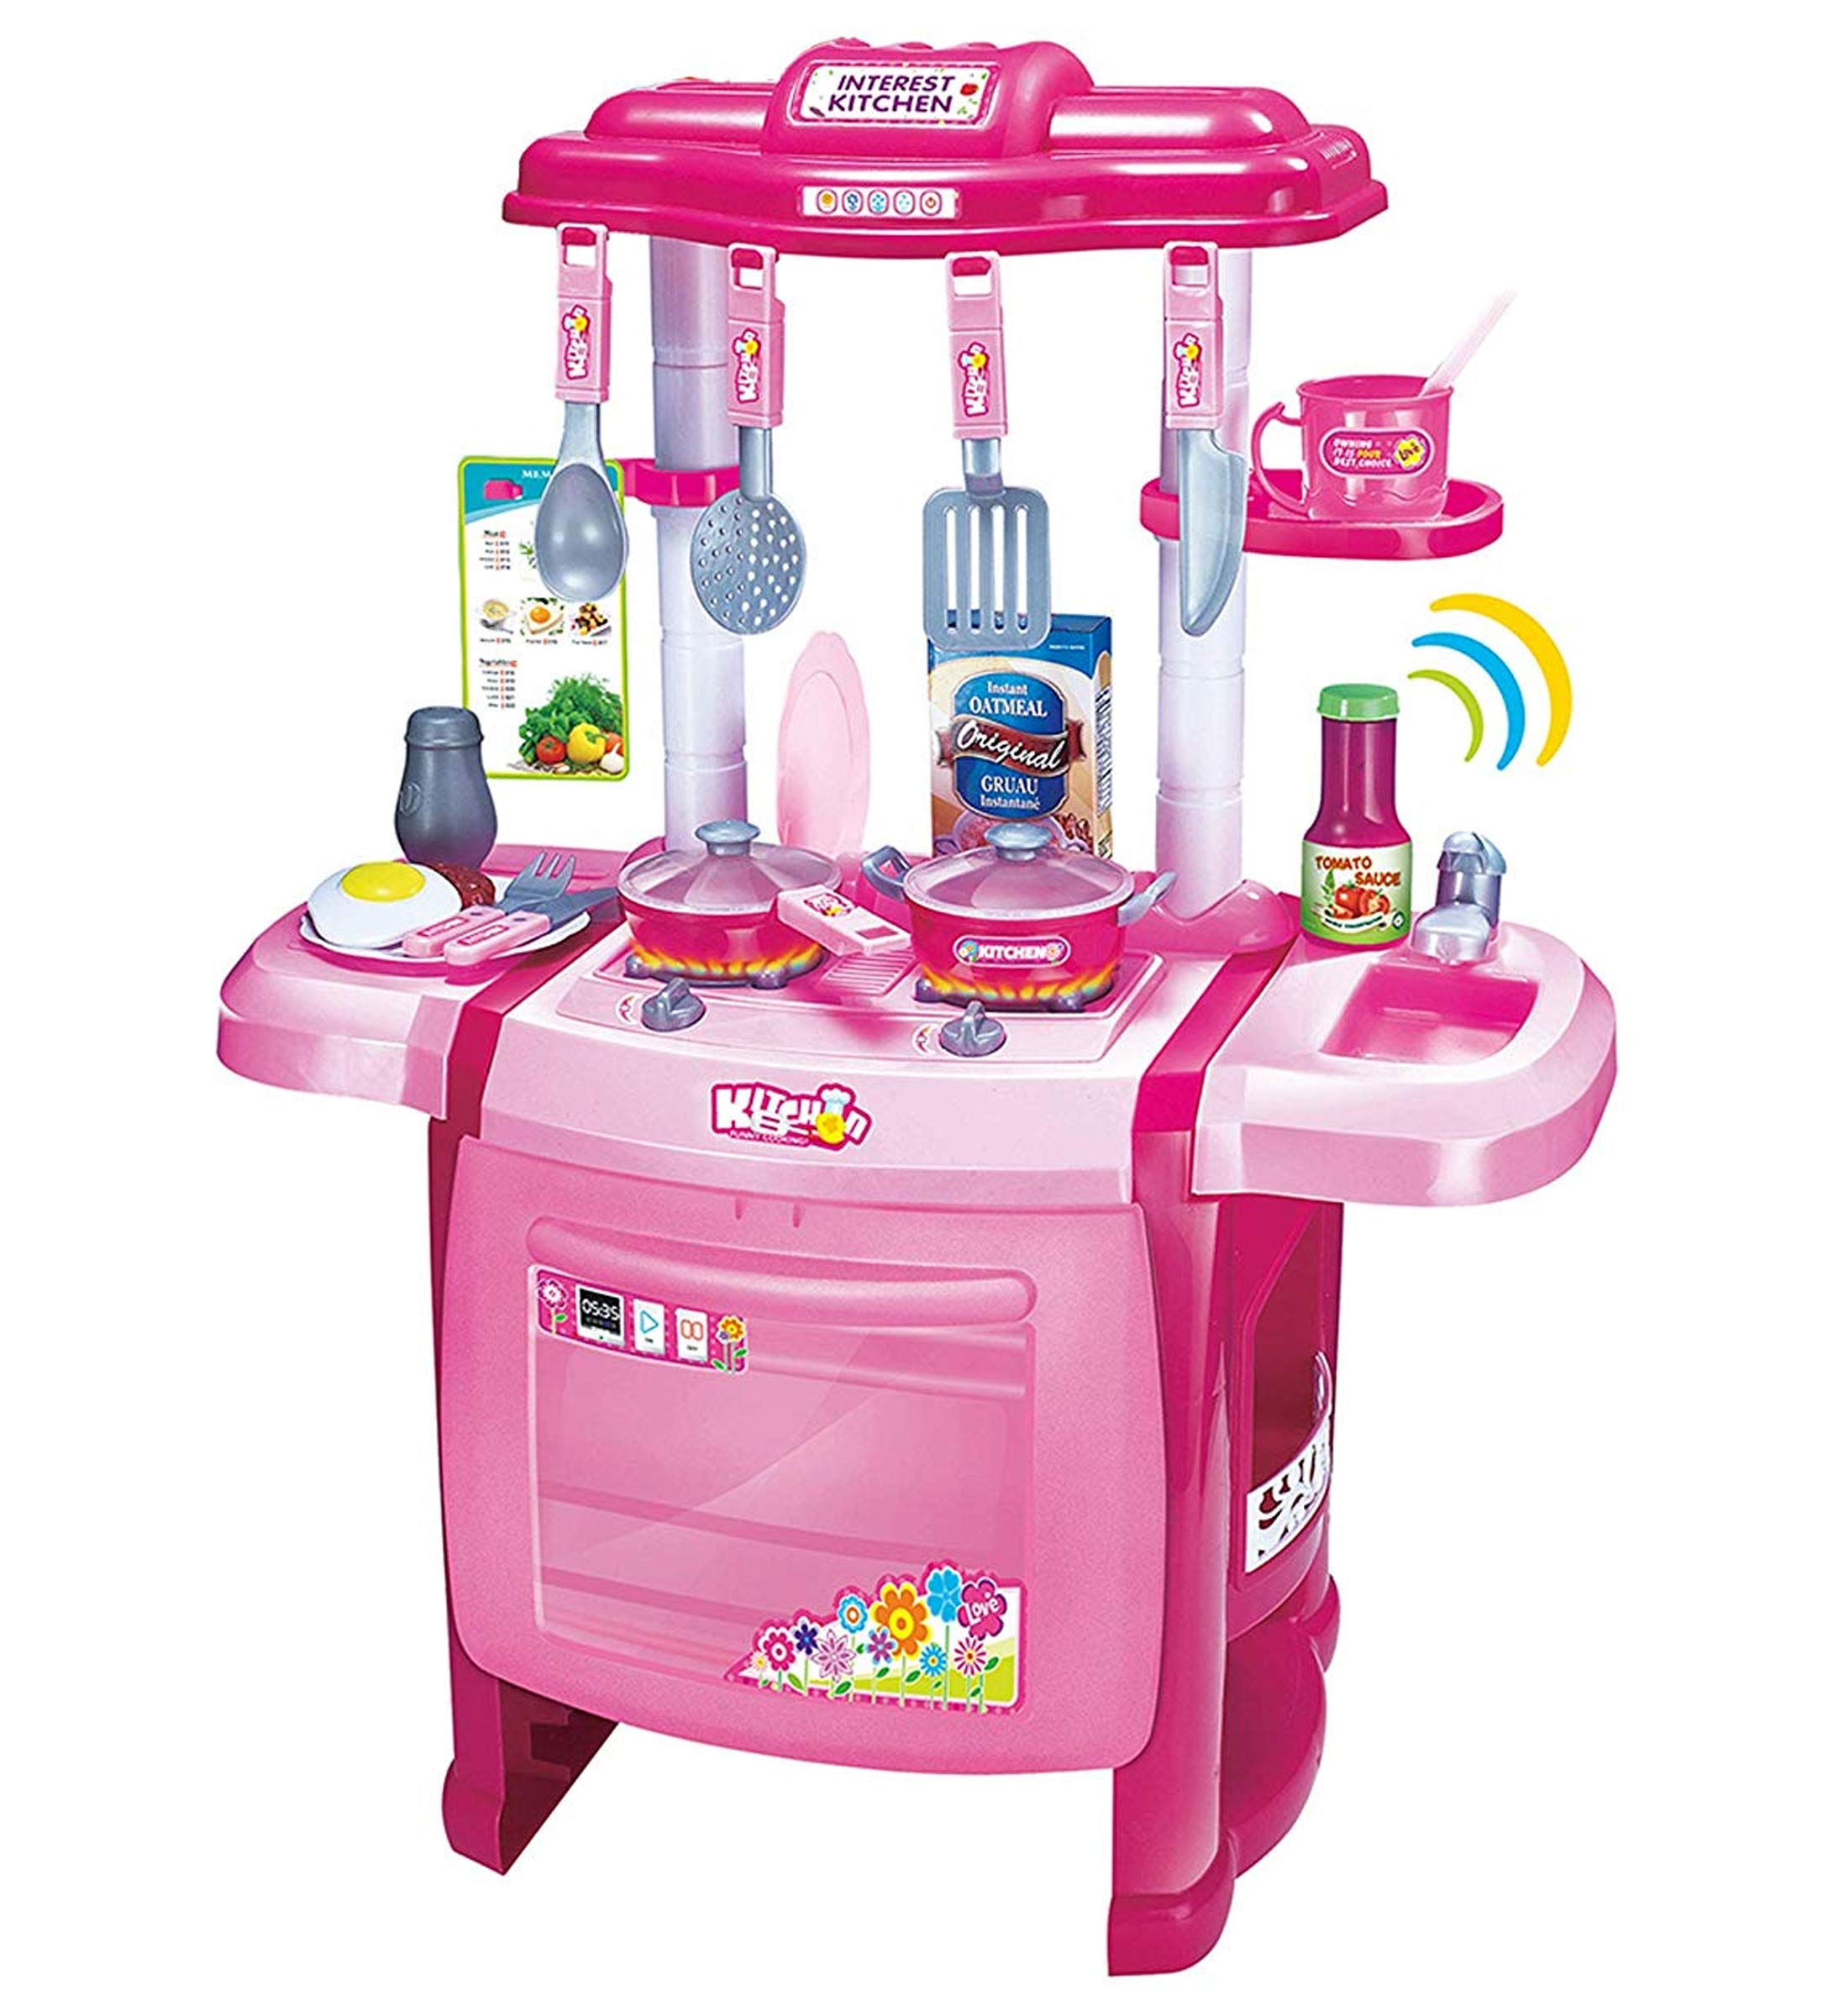 Mozlly Jumbo Cook Electronic Complete Kitchen Playset, 24.5'' Toddler Cooking Toys Kids Oven Sink Stovetop Cookware Pretend Play Lights & Sound Effects, Colors May Vary